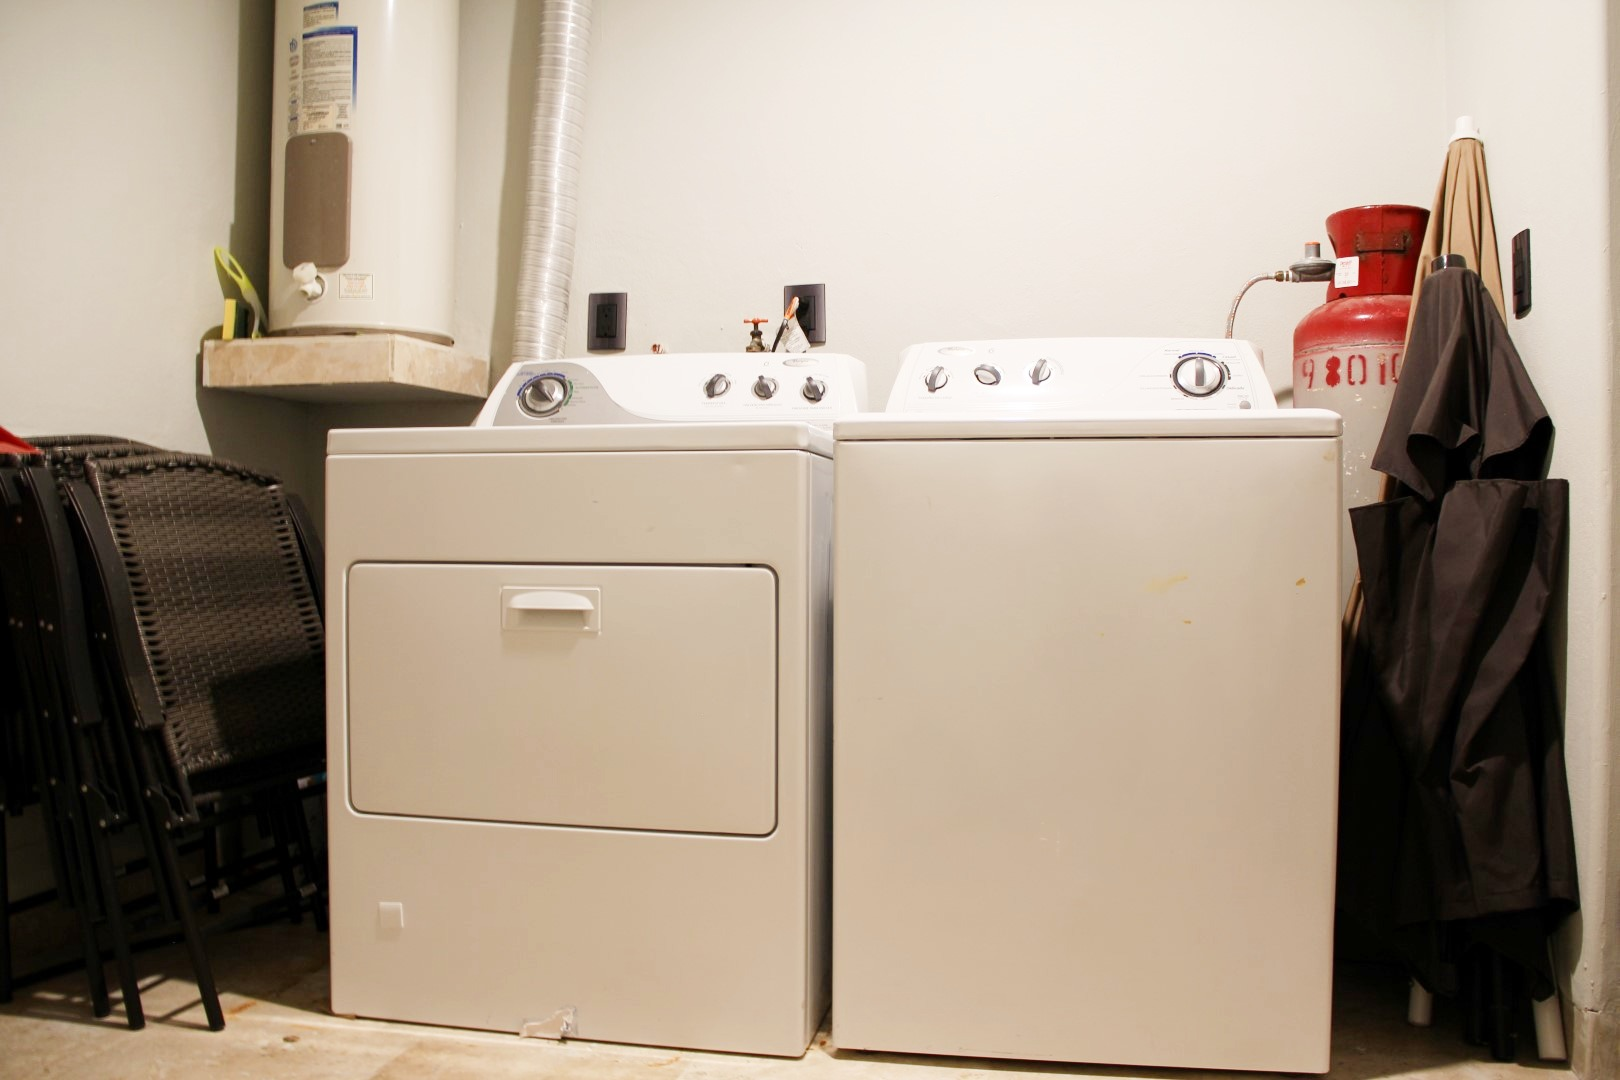 Large service room with full size washer and dryer.